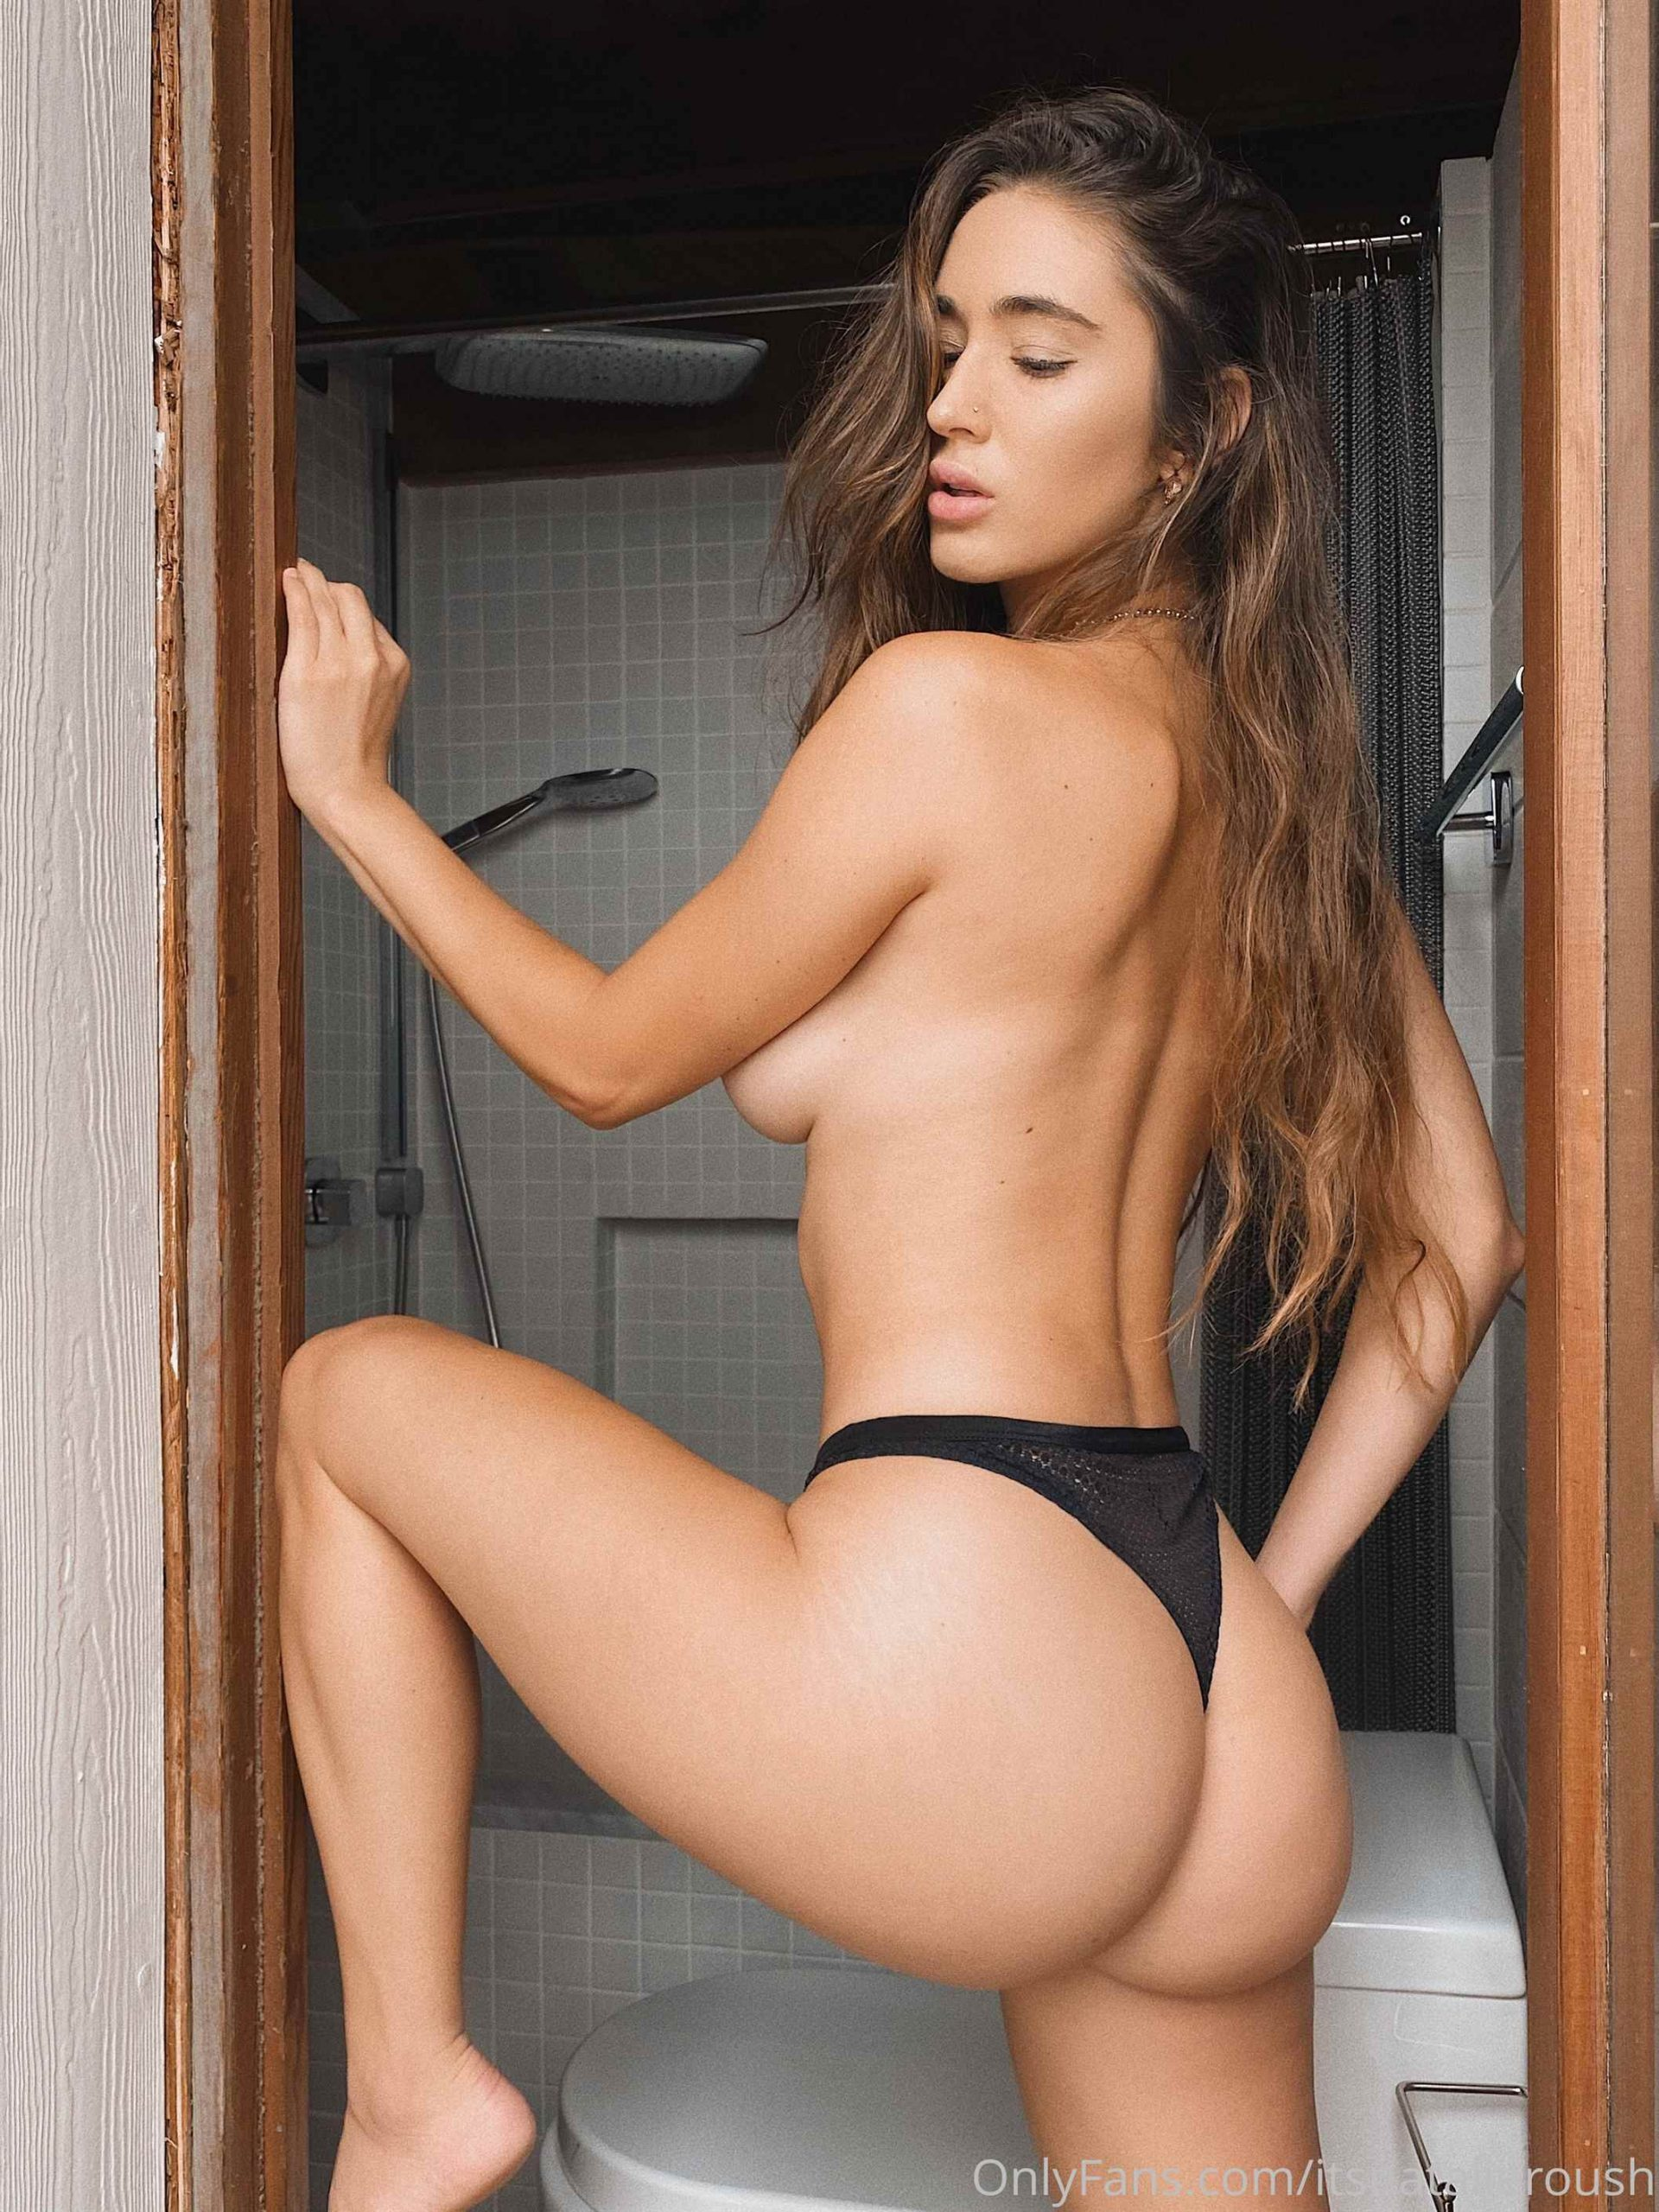 Natalie Roush Nude Leaked Onlyfans Photos 0060